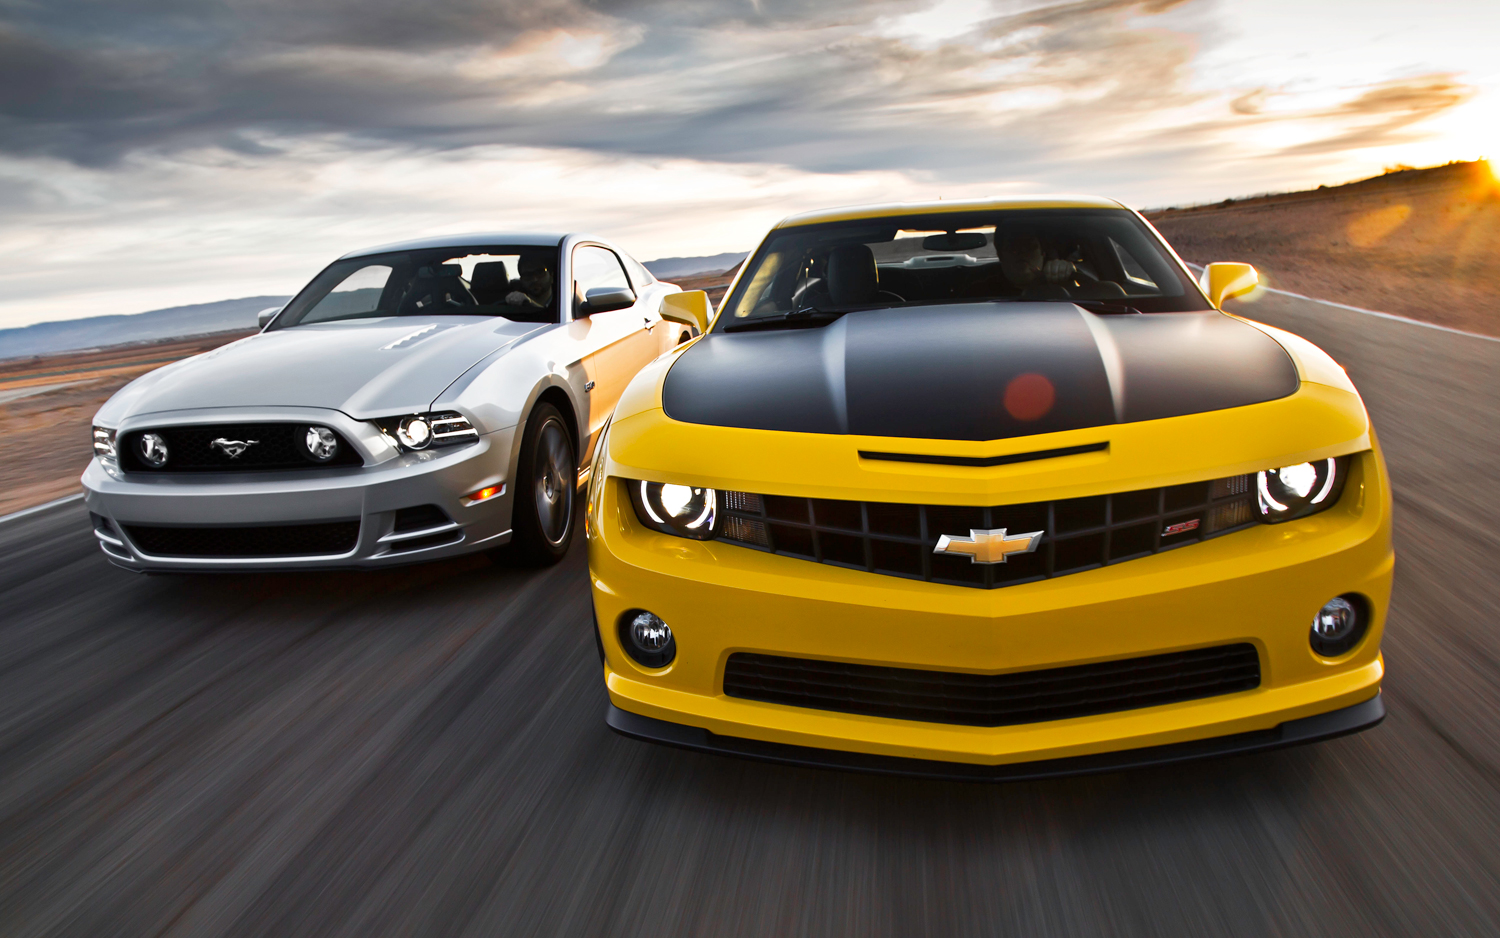 2013 Chevrolet Camaro vs 2013 Ford Mustang GT5 Background Images